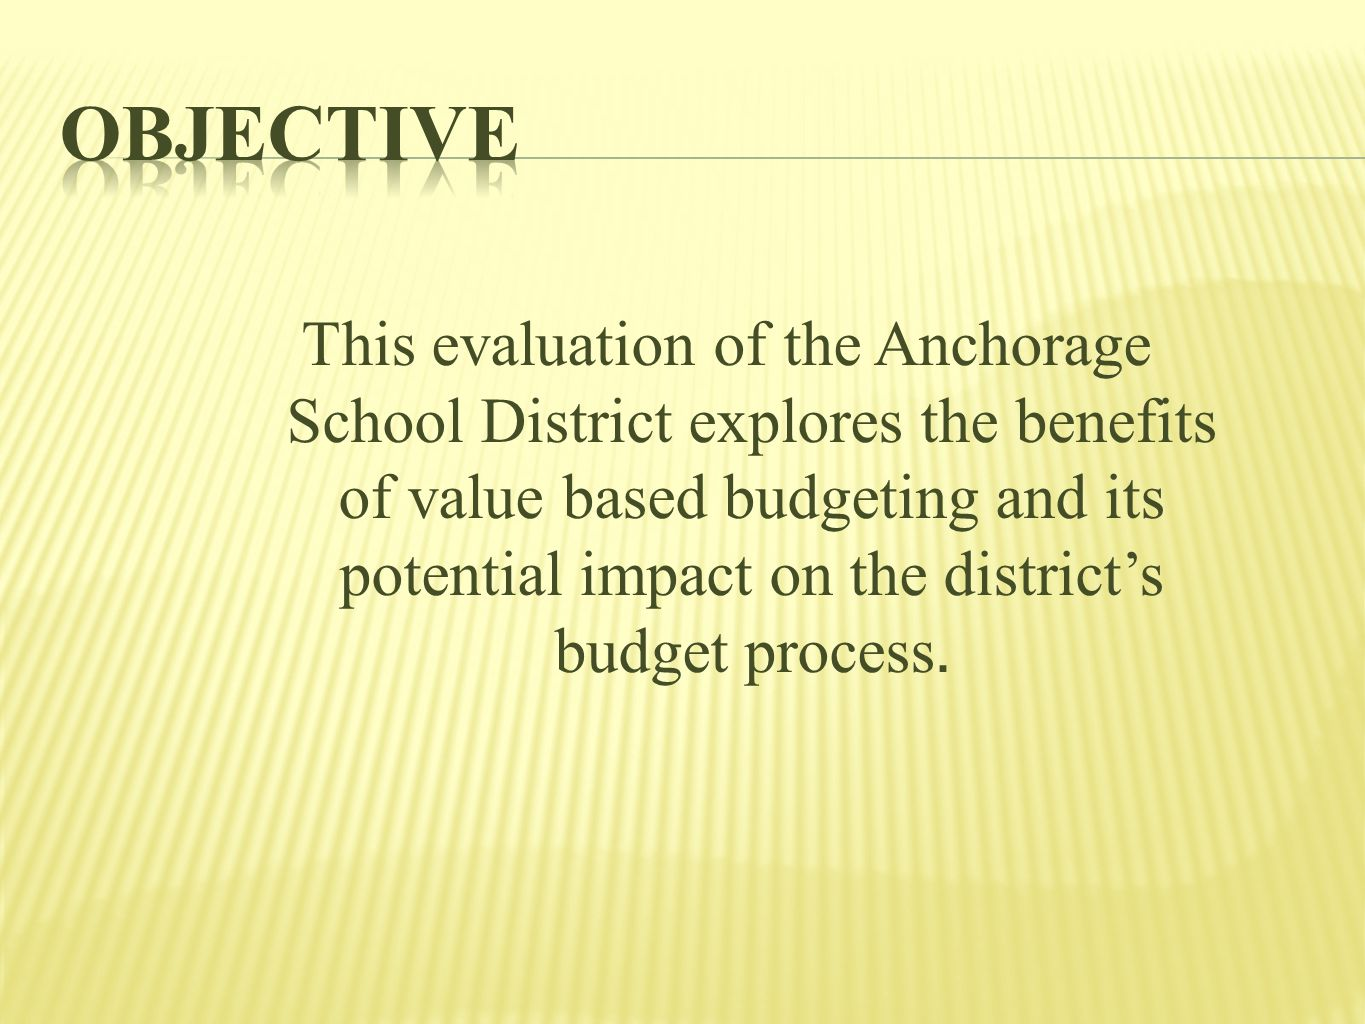 This evaluation of the Anchorage School District explores the benefits of value based budgeting and its potential impact on the district's budget process.